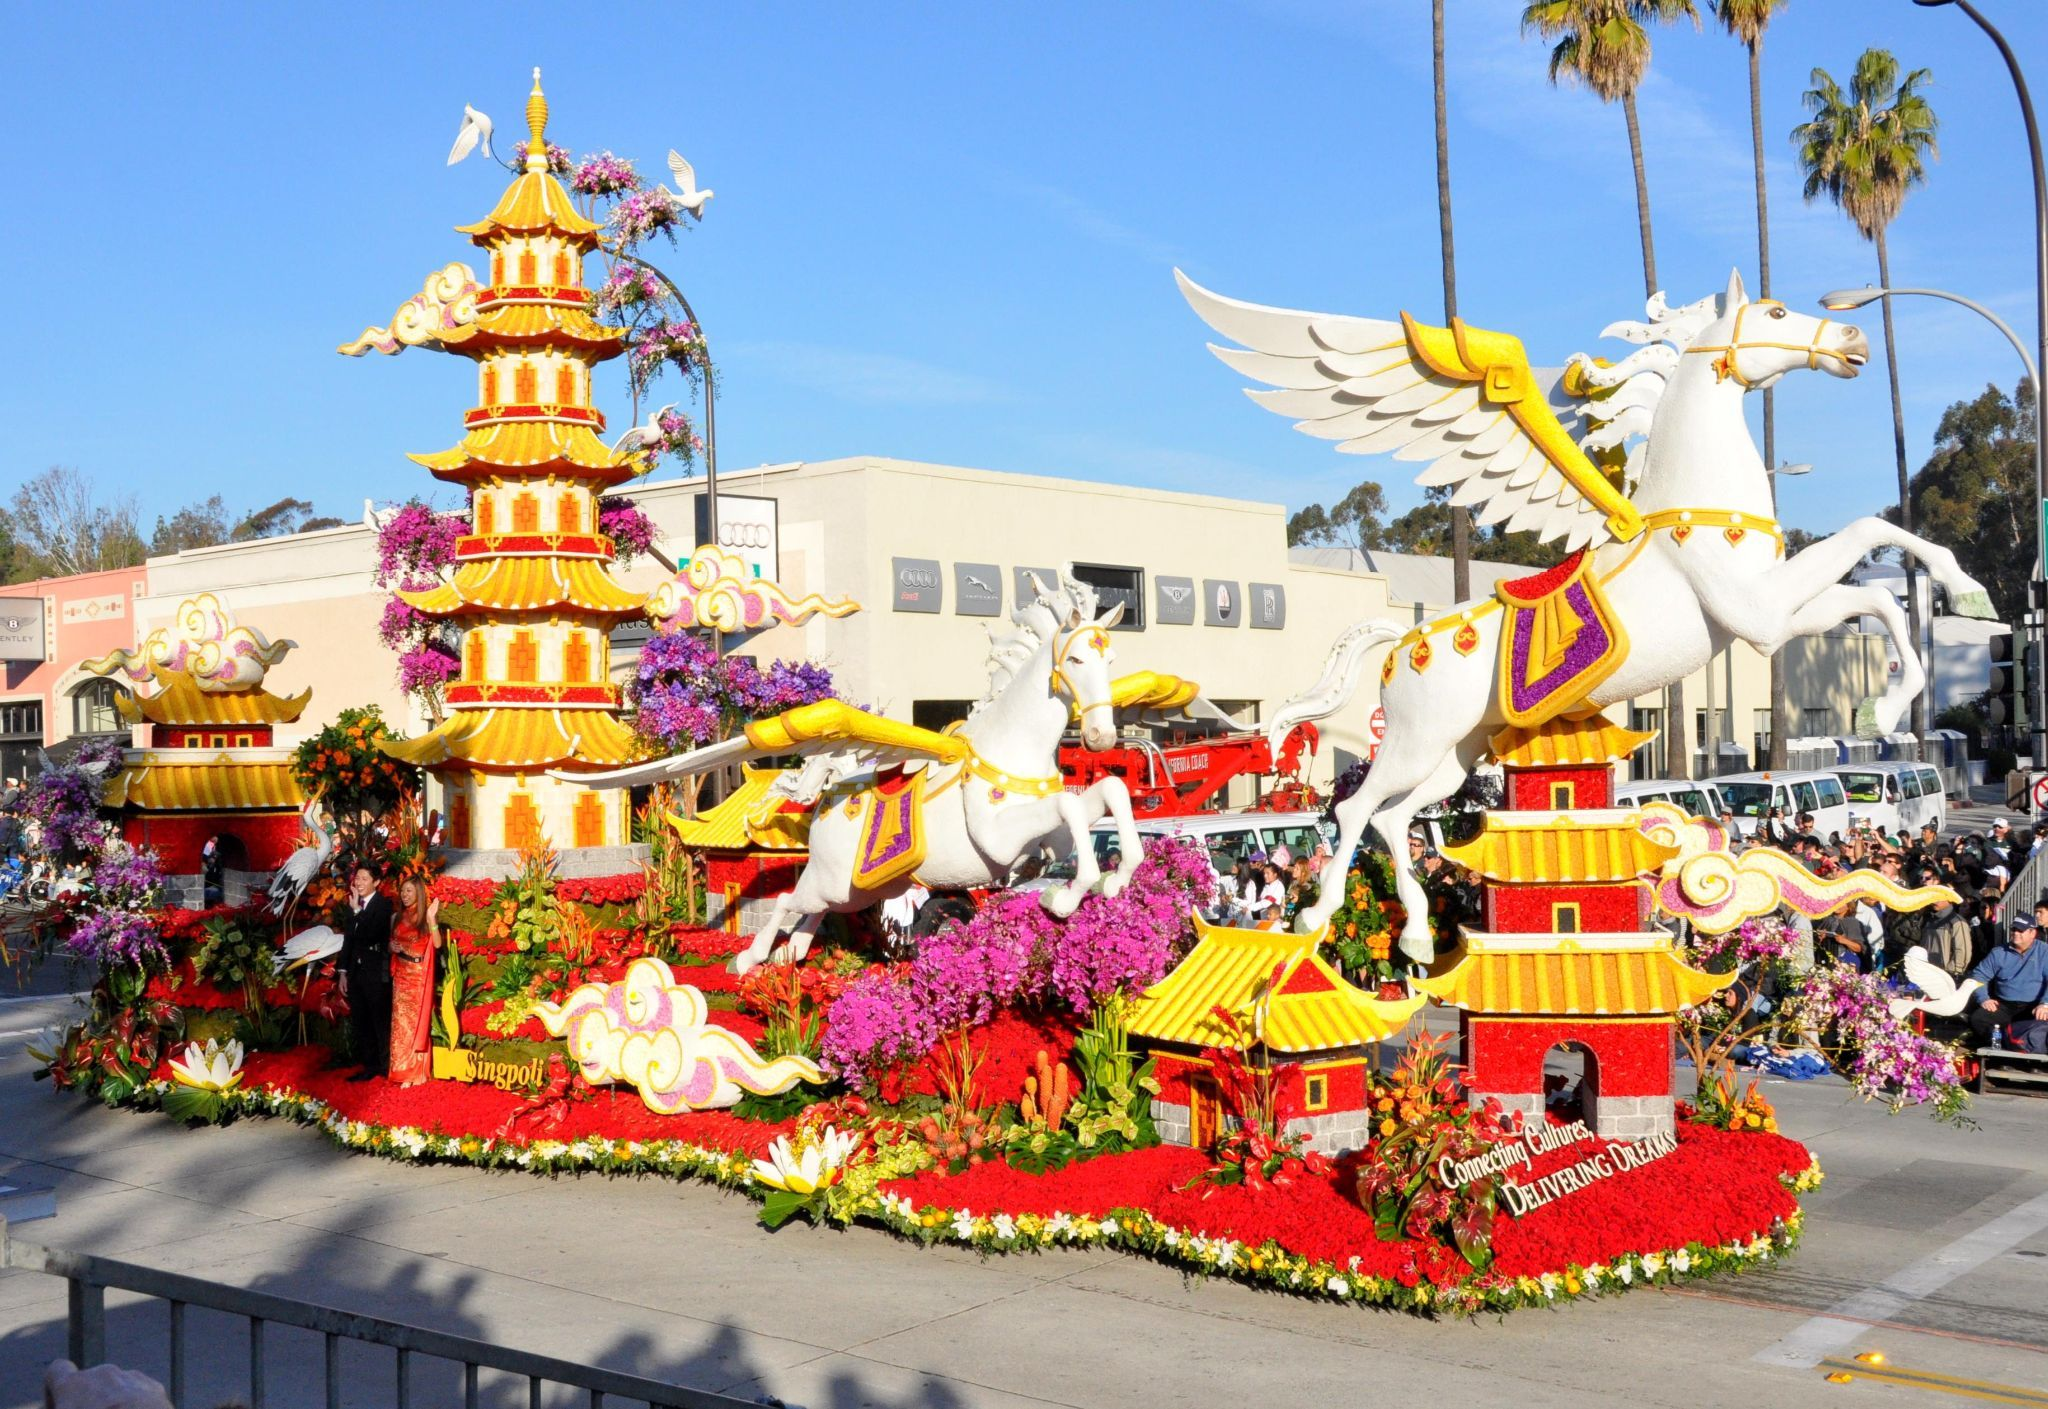 Public Storage Is Making History With Its Rose Parade Float And